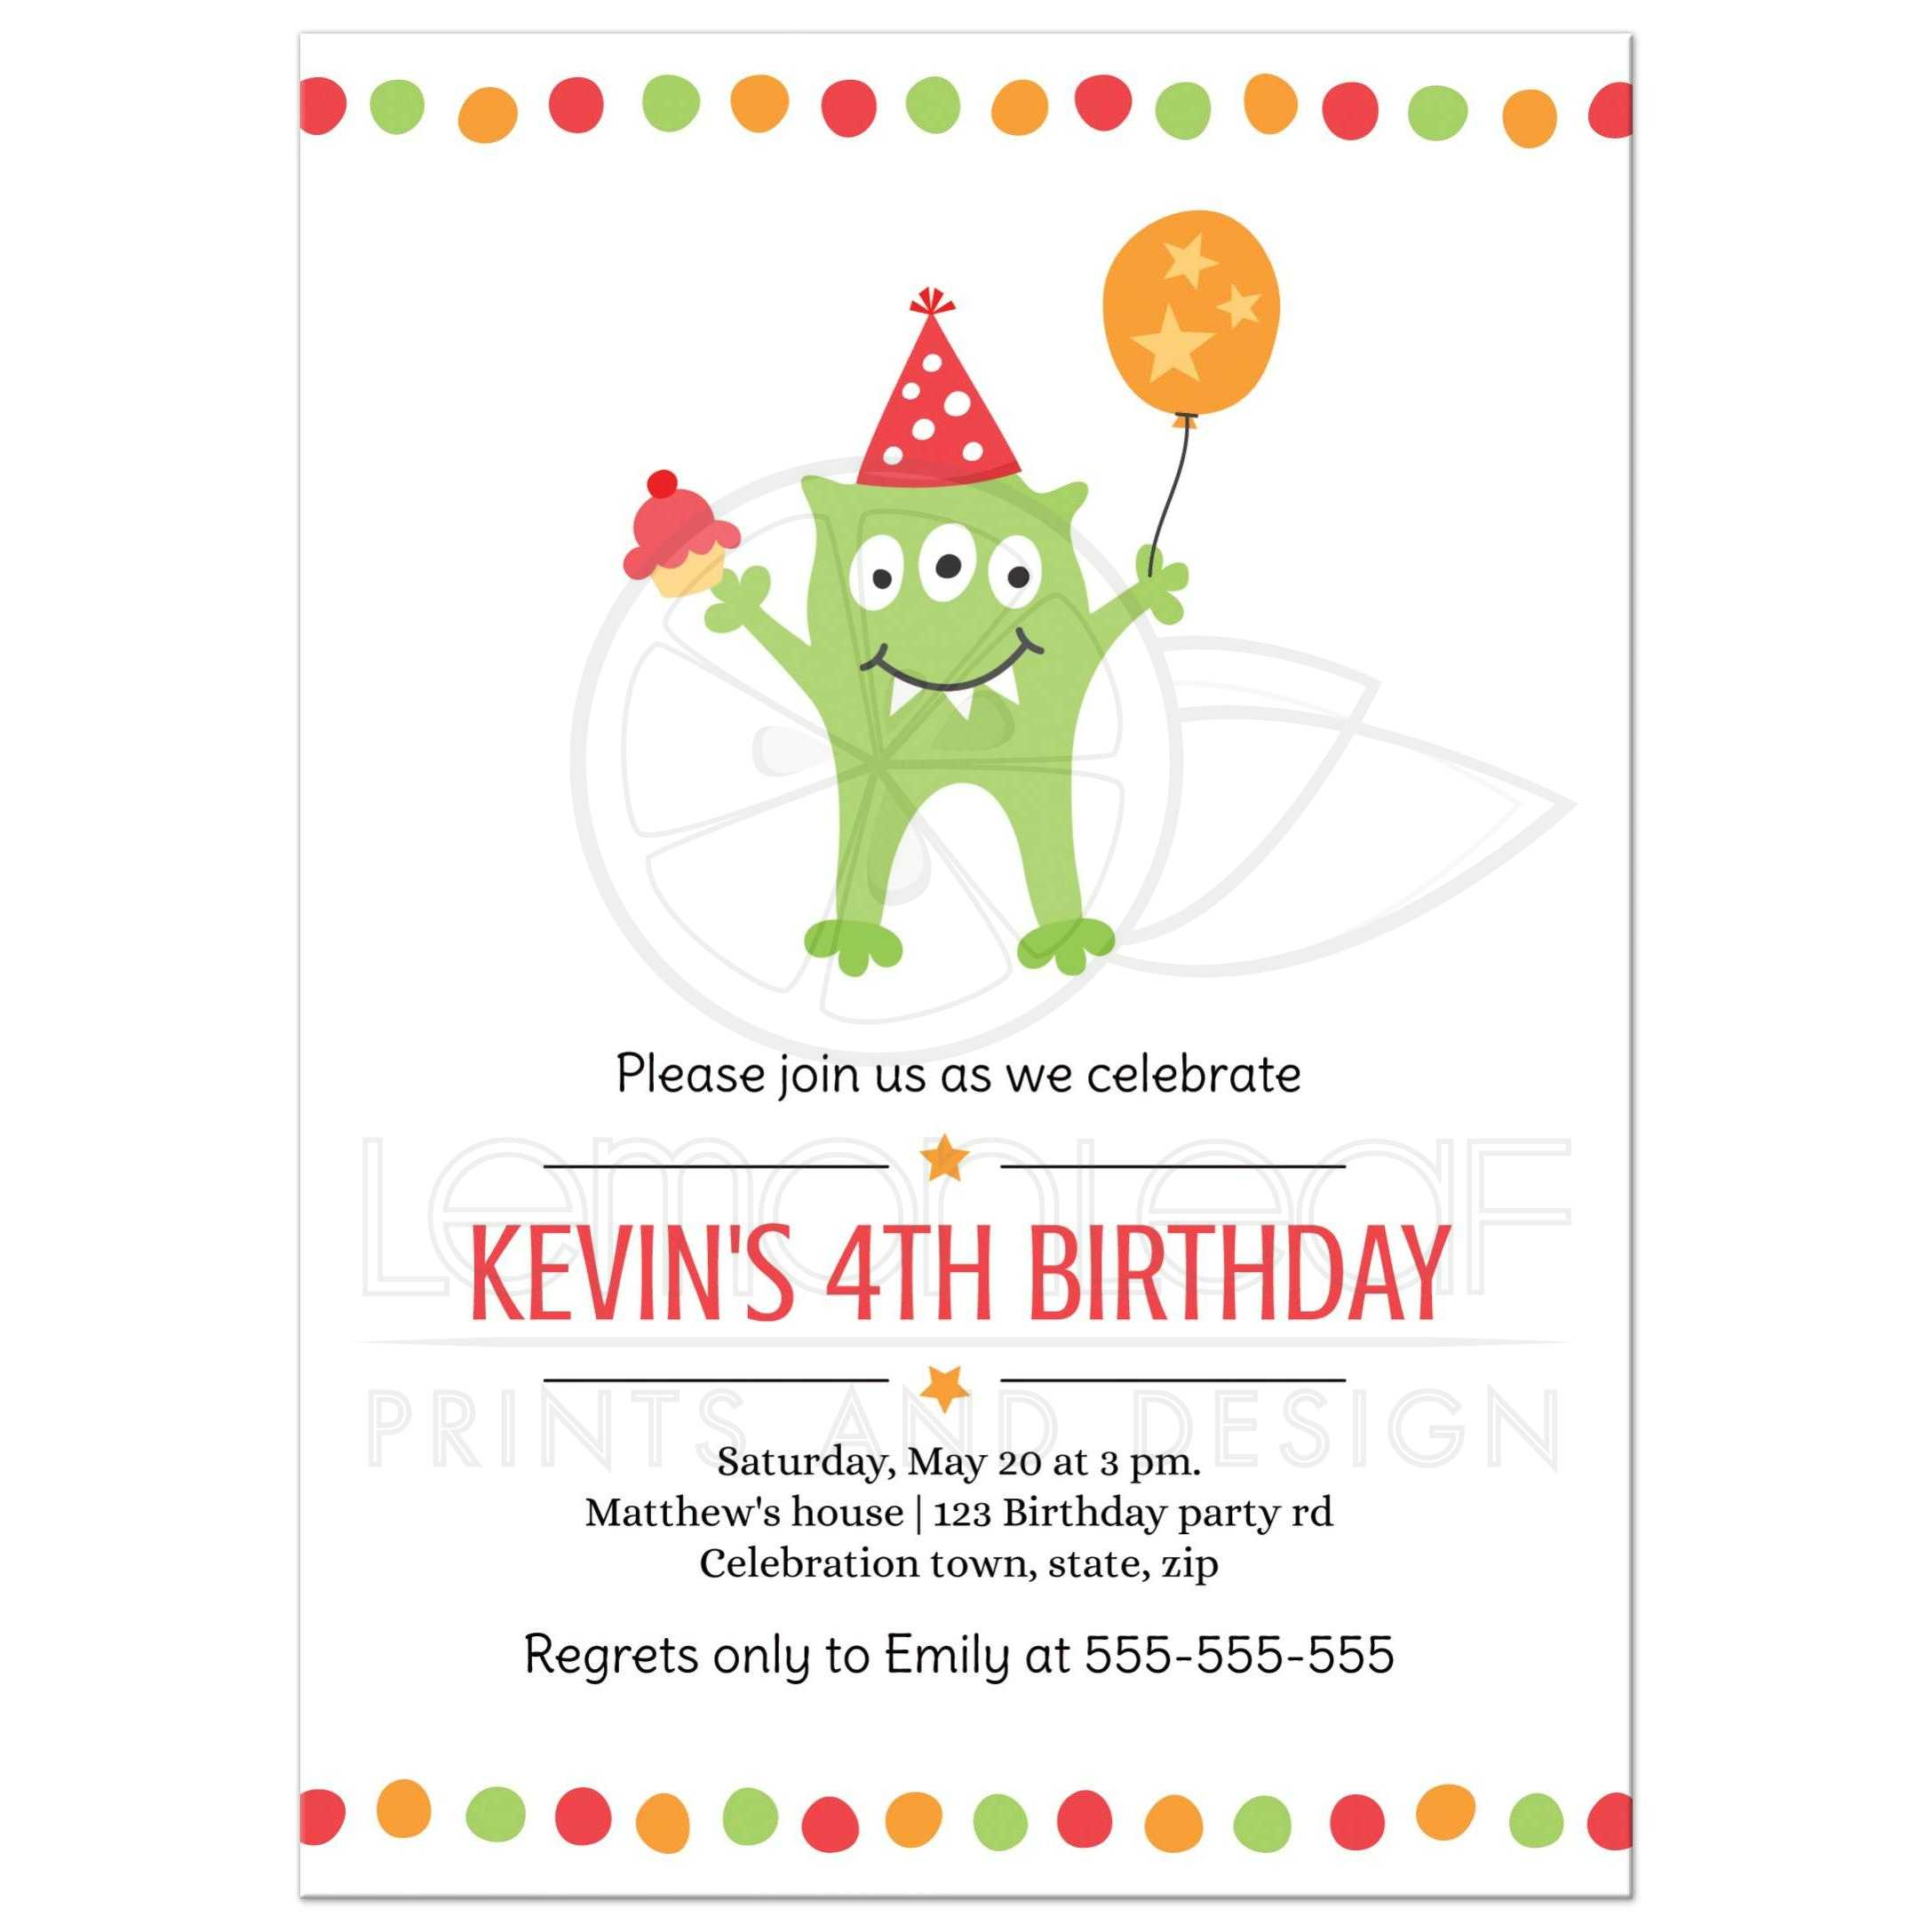 Funny monster with balloon and party hat birthday invitation for kids